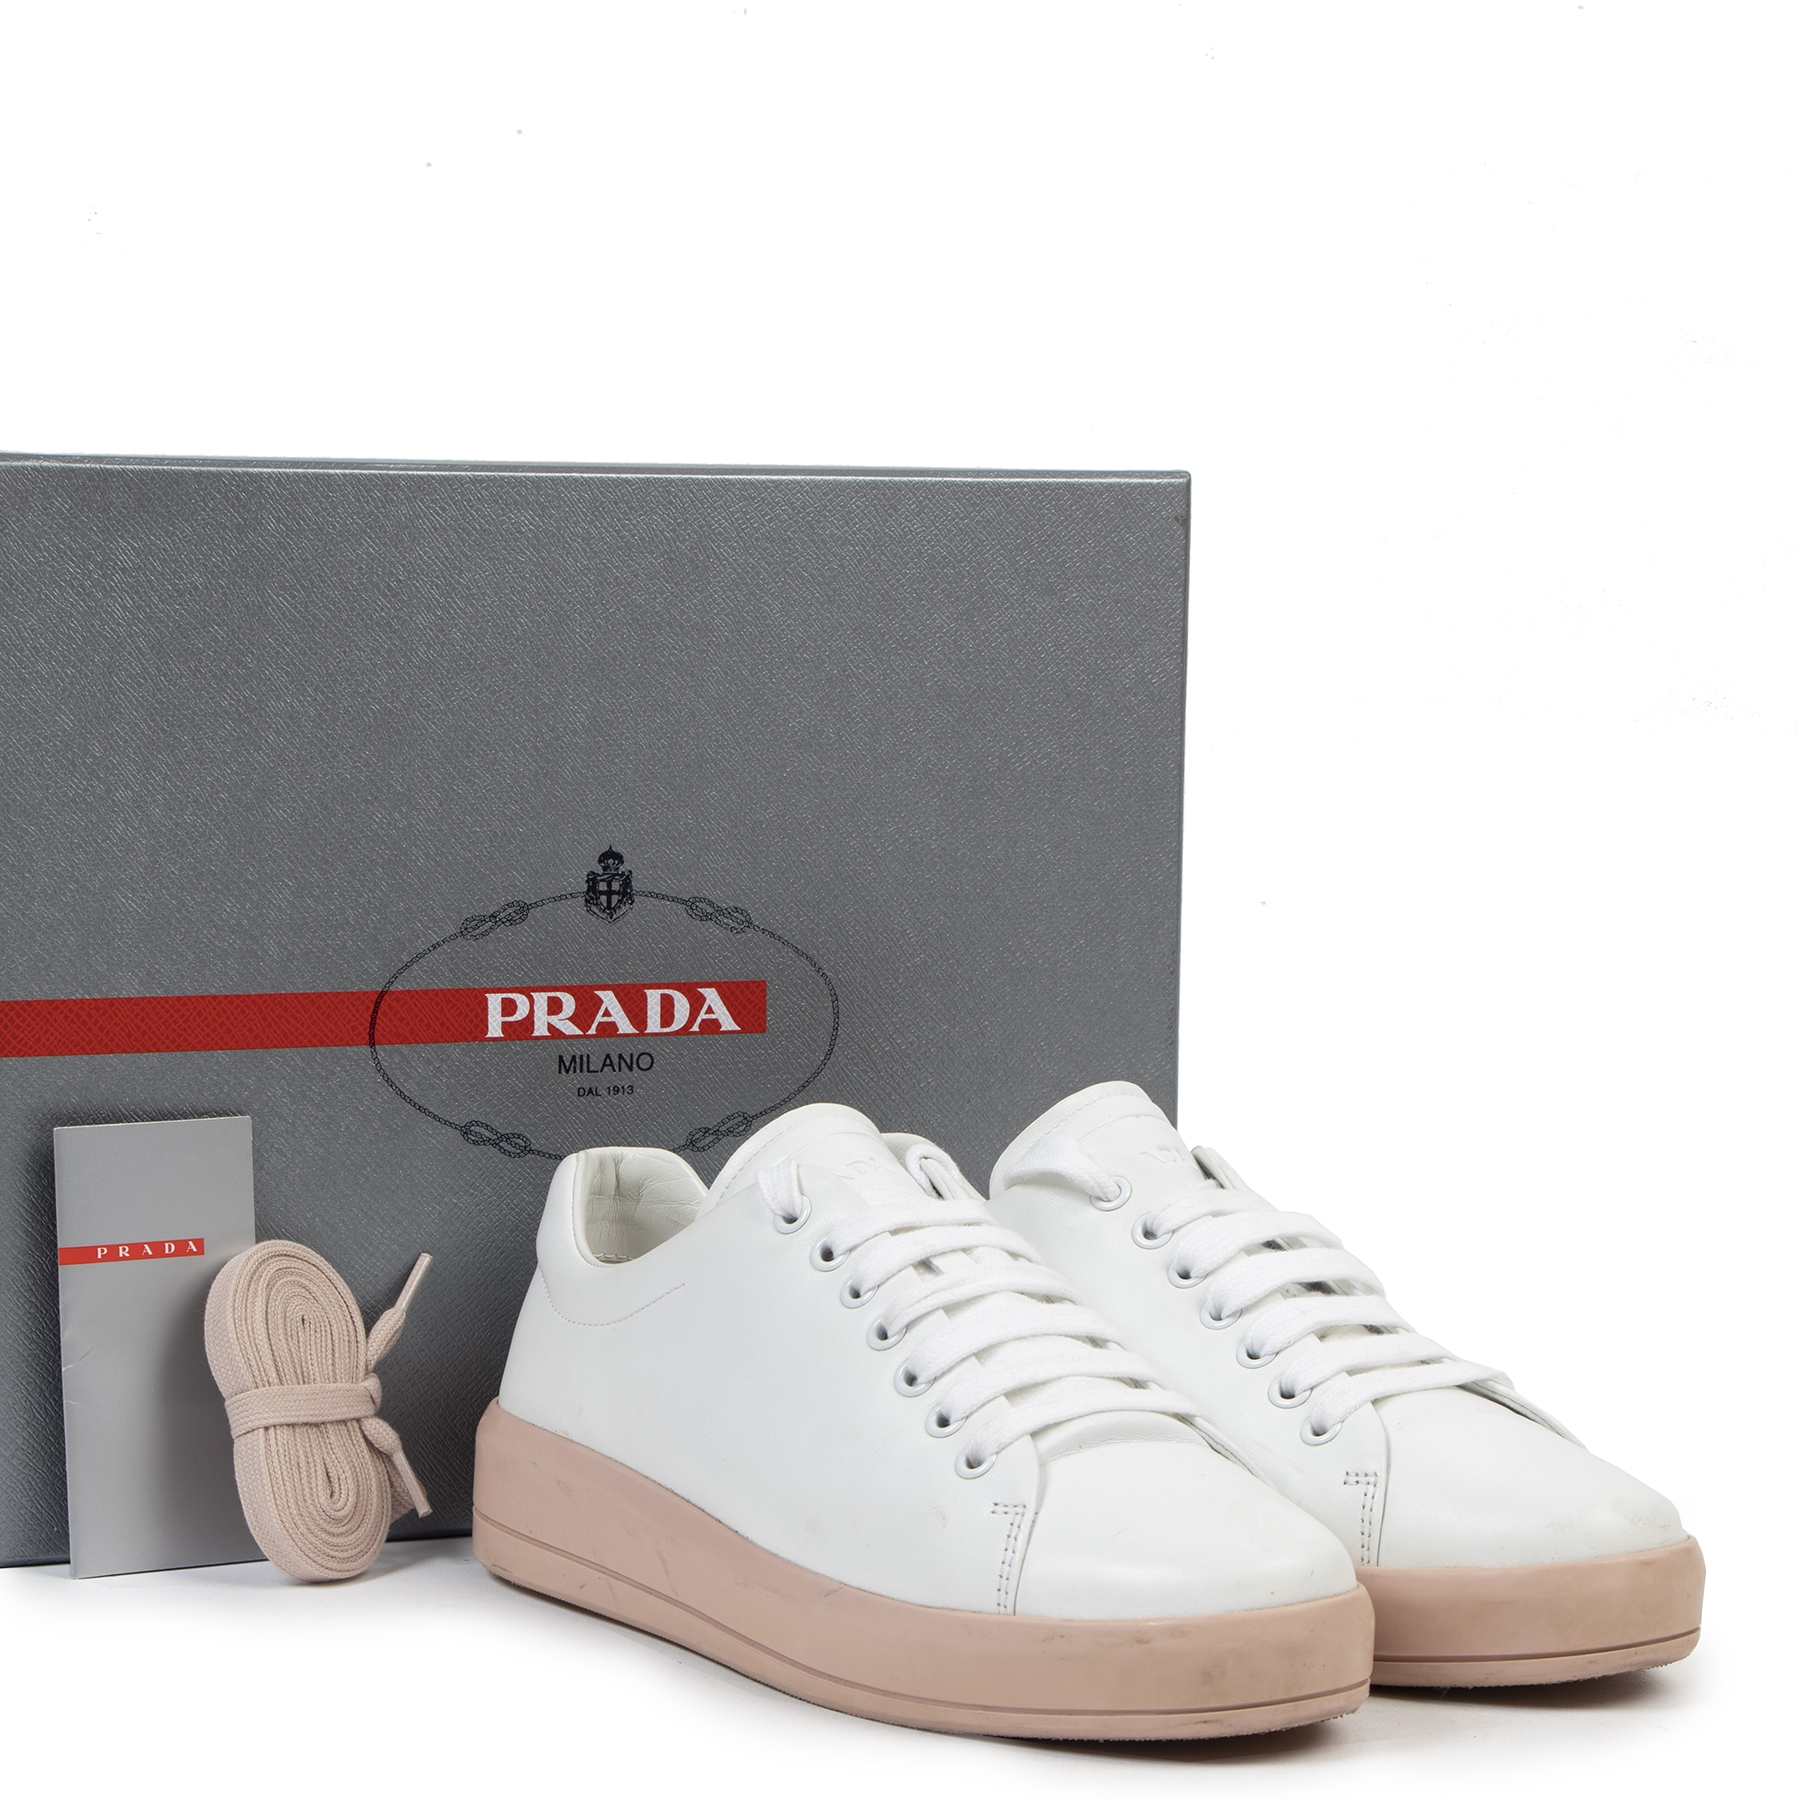 Authentic secondhand  Prada Linea Rossa White Sneakers - Size 38,5 designer shoes fashion luxury vintage webshop safe secure online shopping